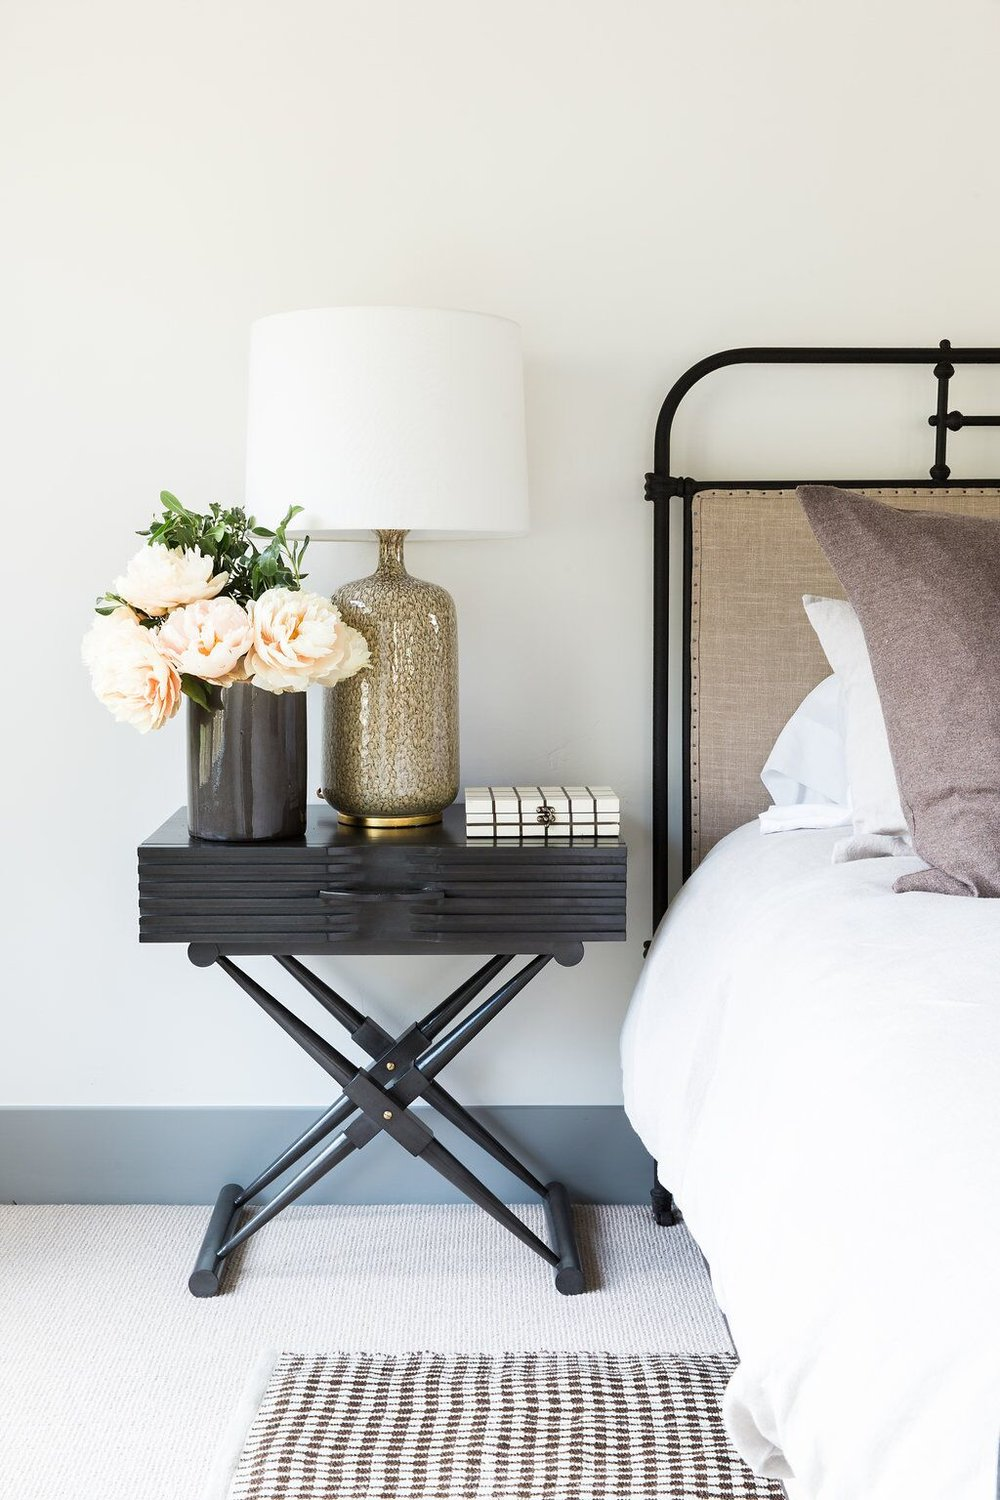 Zane Side Table  +  Culloden Table Lamp  in our  Park City Canyons Remodel